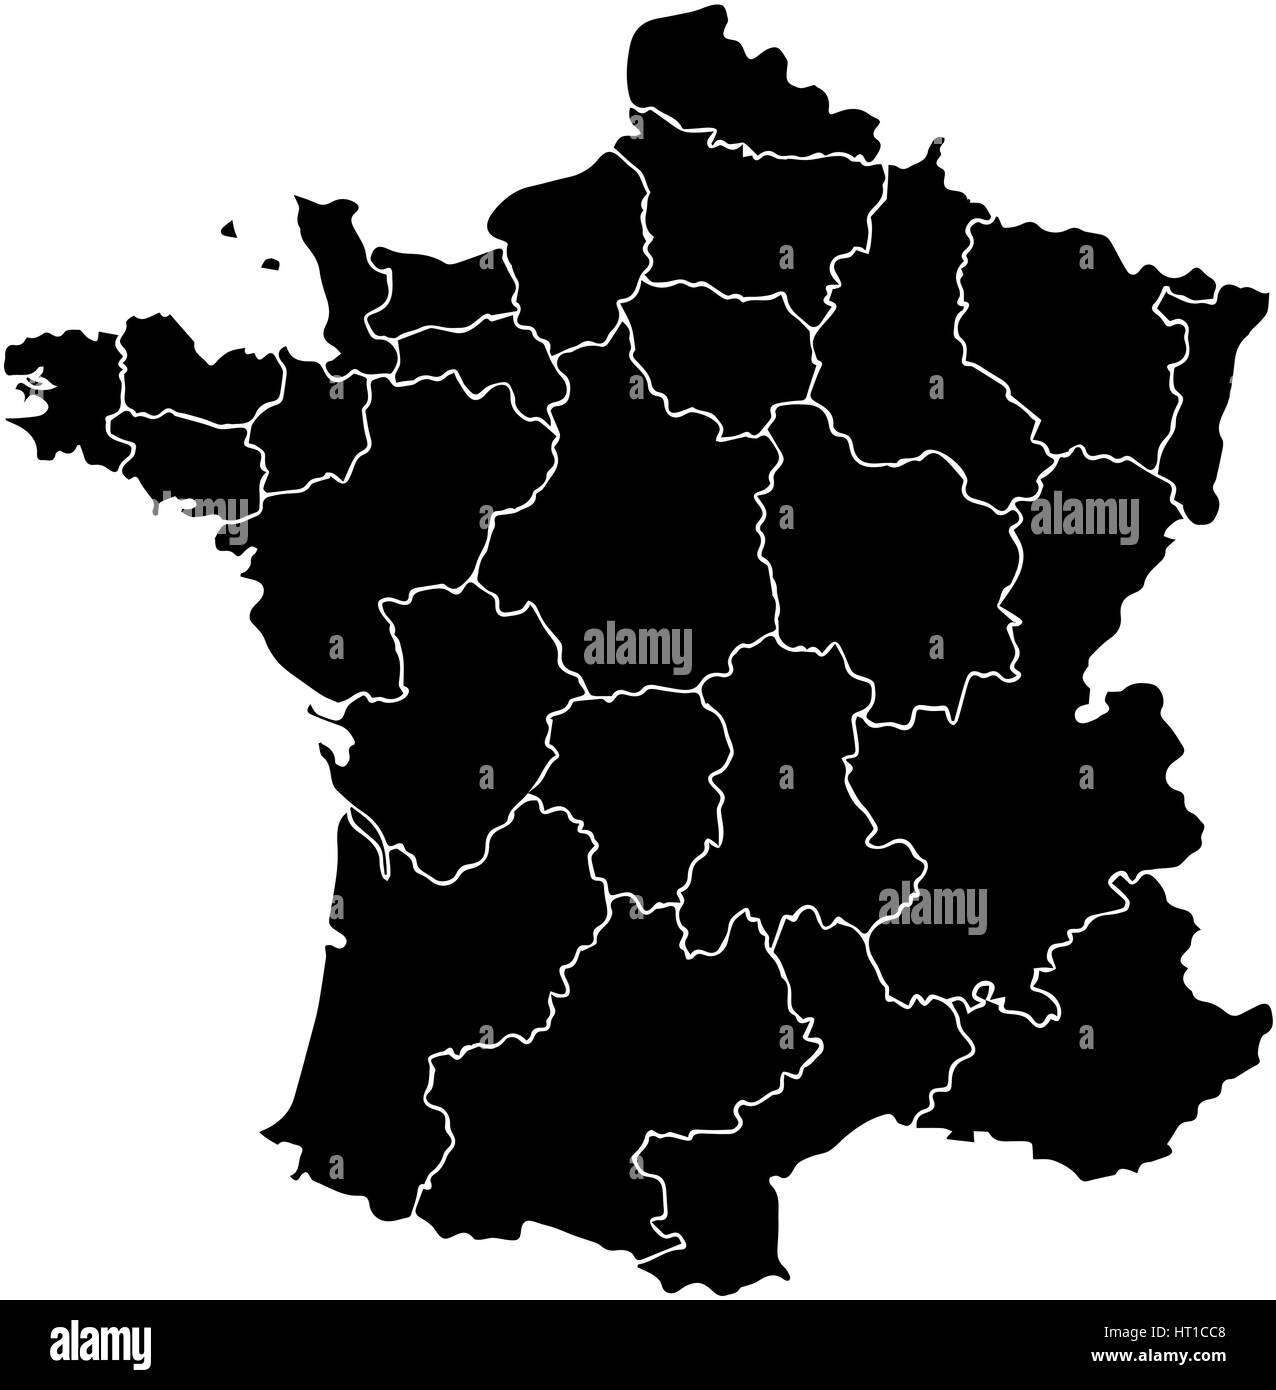 Detailed Map Of France Regions.France Map Stock Photos France Map Stock Images Alamy